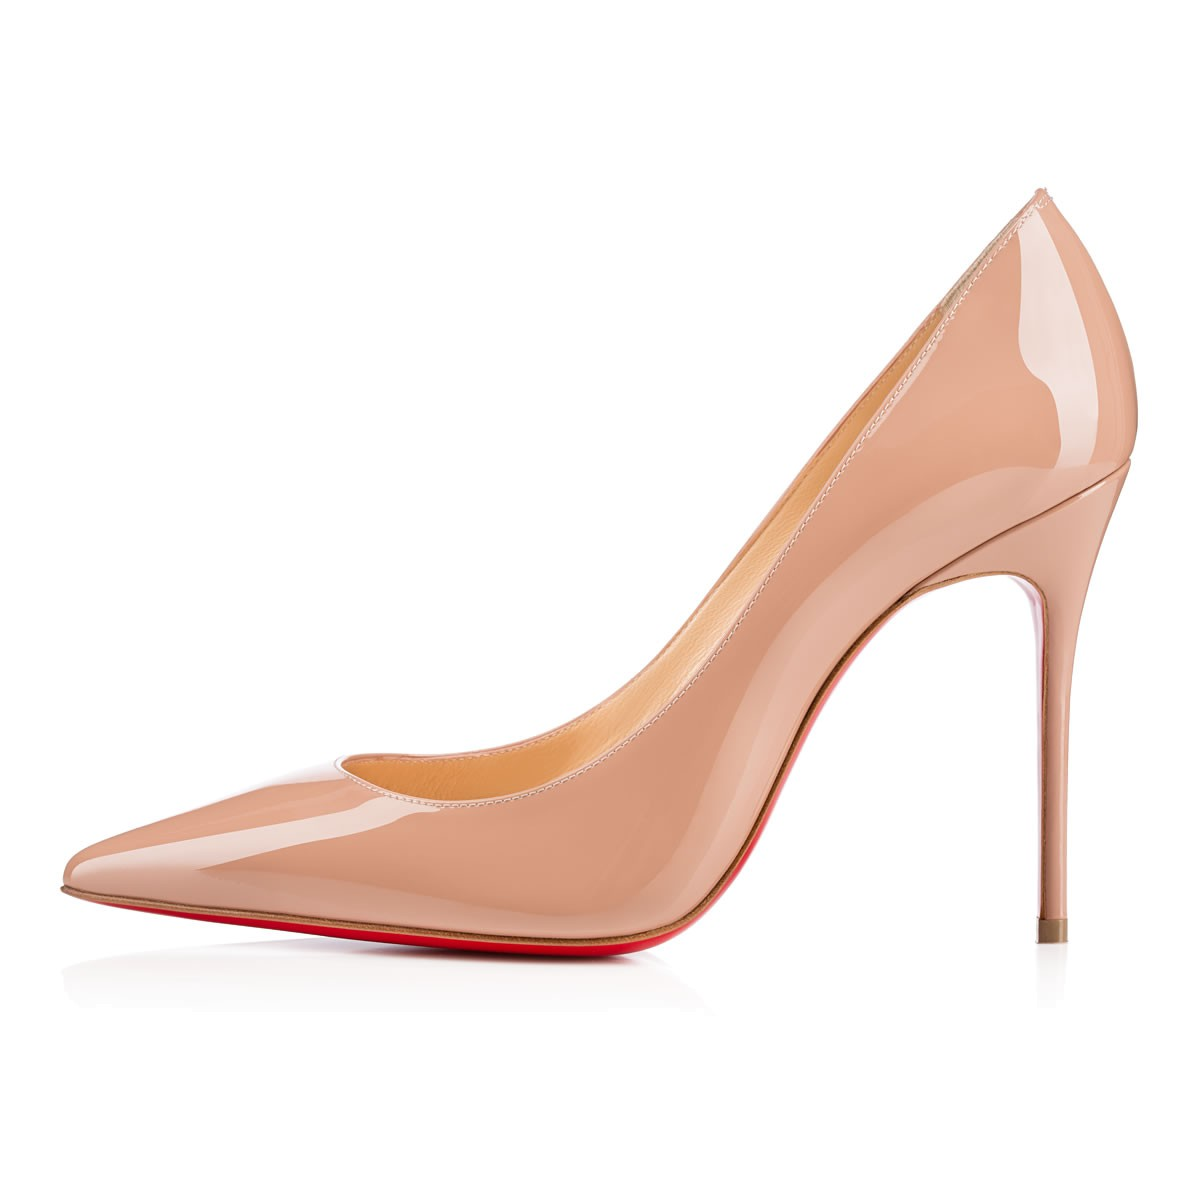 112d95d0b Kate 100 Nude 6248 Patent - Women Shoes - Christian Louboutin